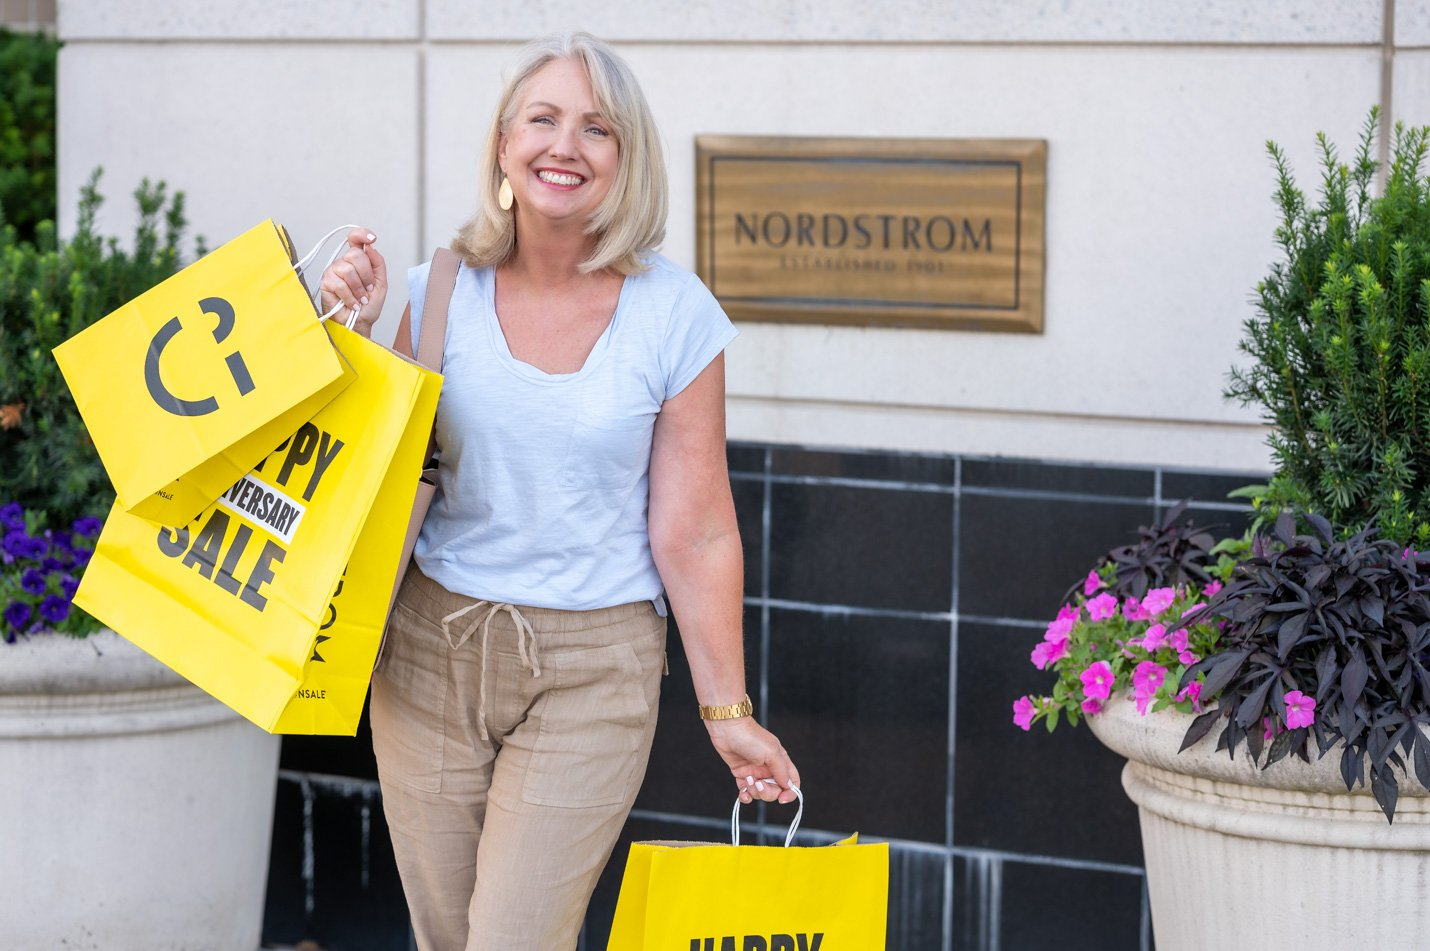 Blessed & Dressed Nordstrom Gift Card giveaway